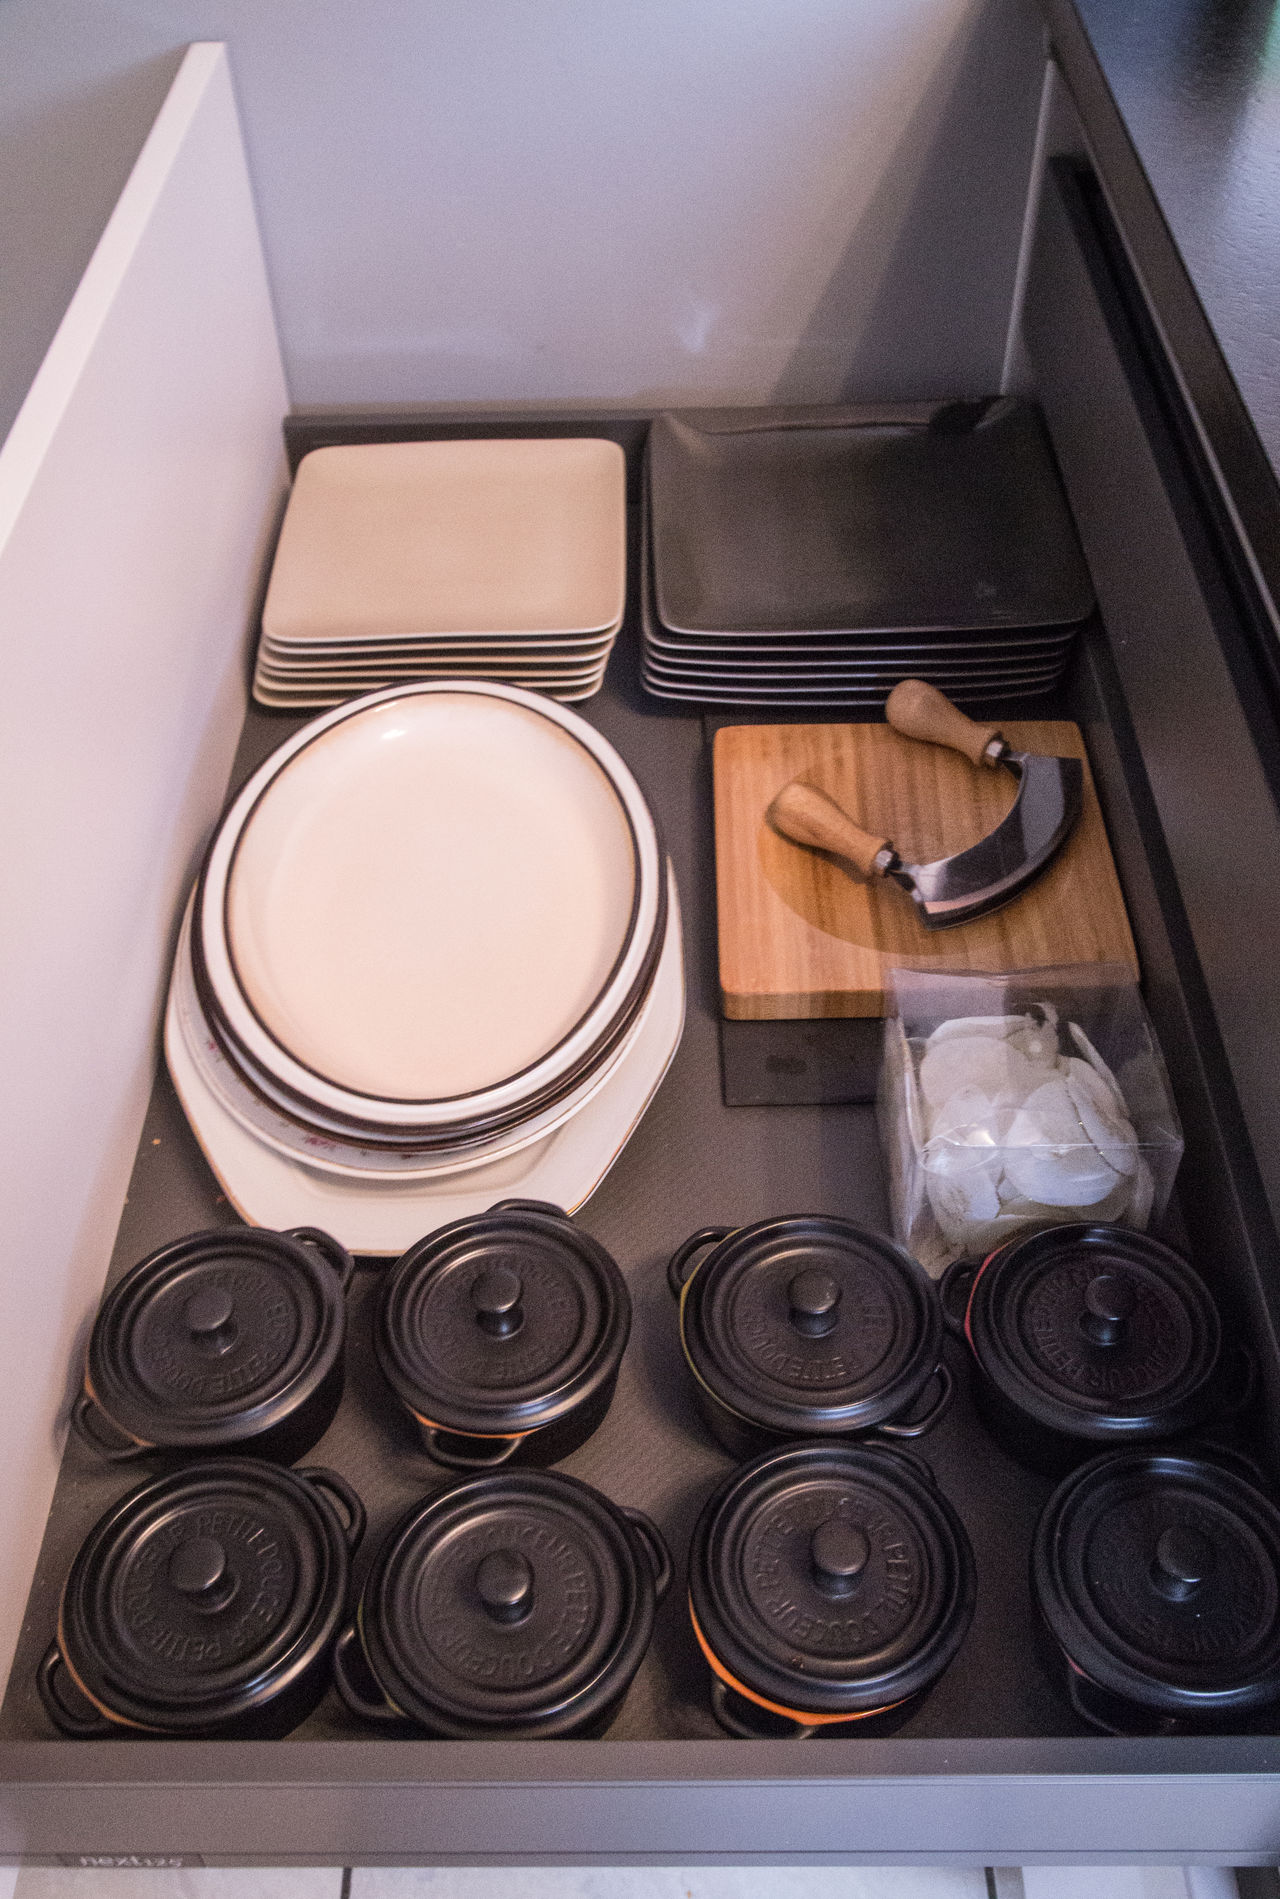 Arrangement Directly Above Everything In Its Place Kitchen Units Kitchenware Large Group Of Objects Plates And Bowls Pull Out Kitchen Drawer Tidy Drawer